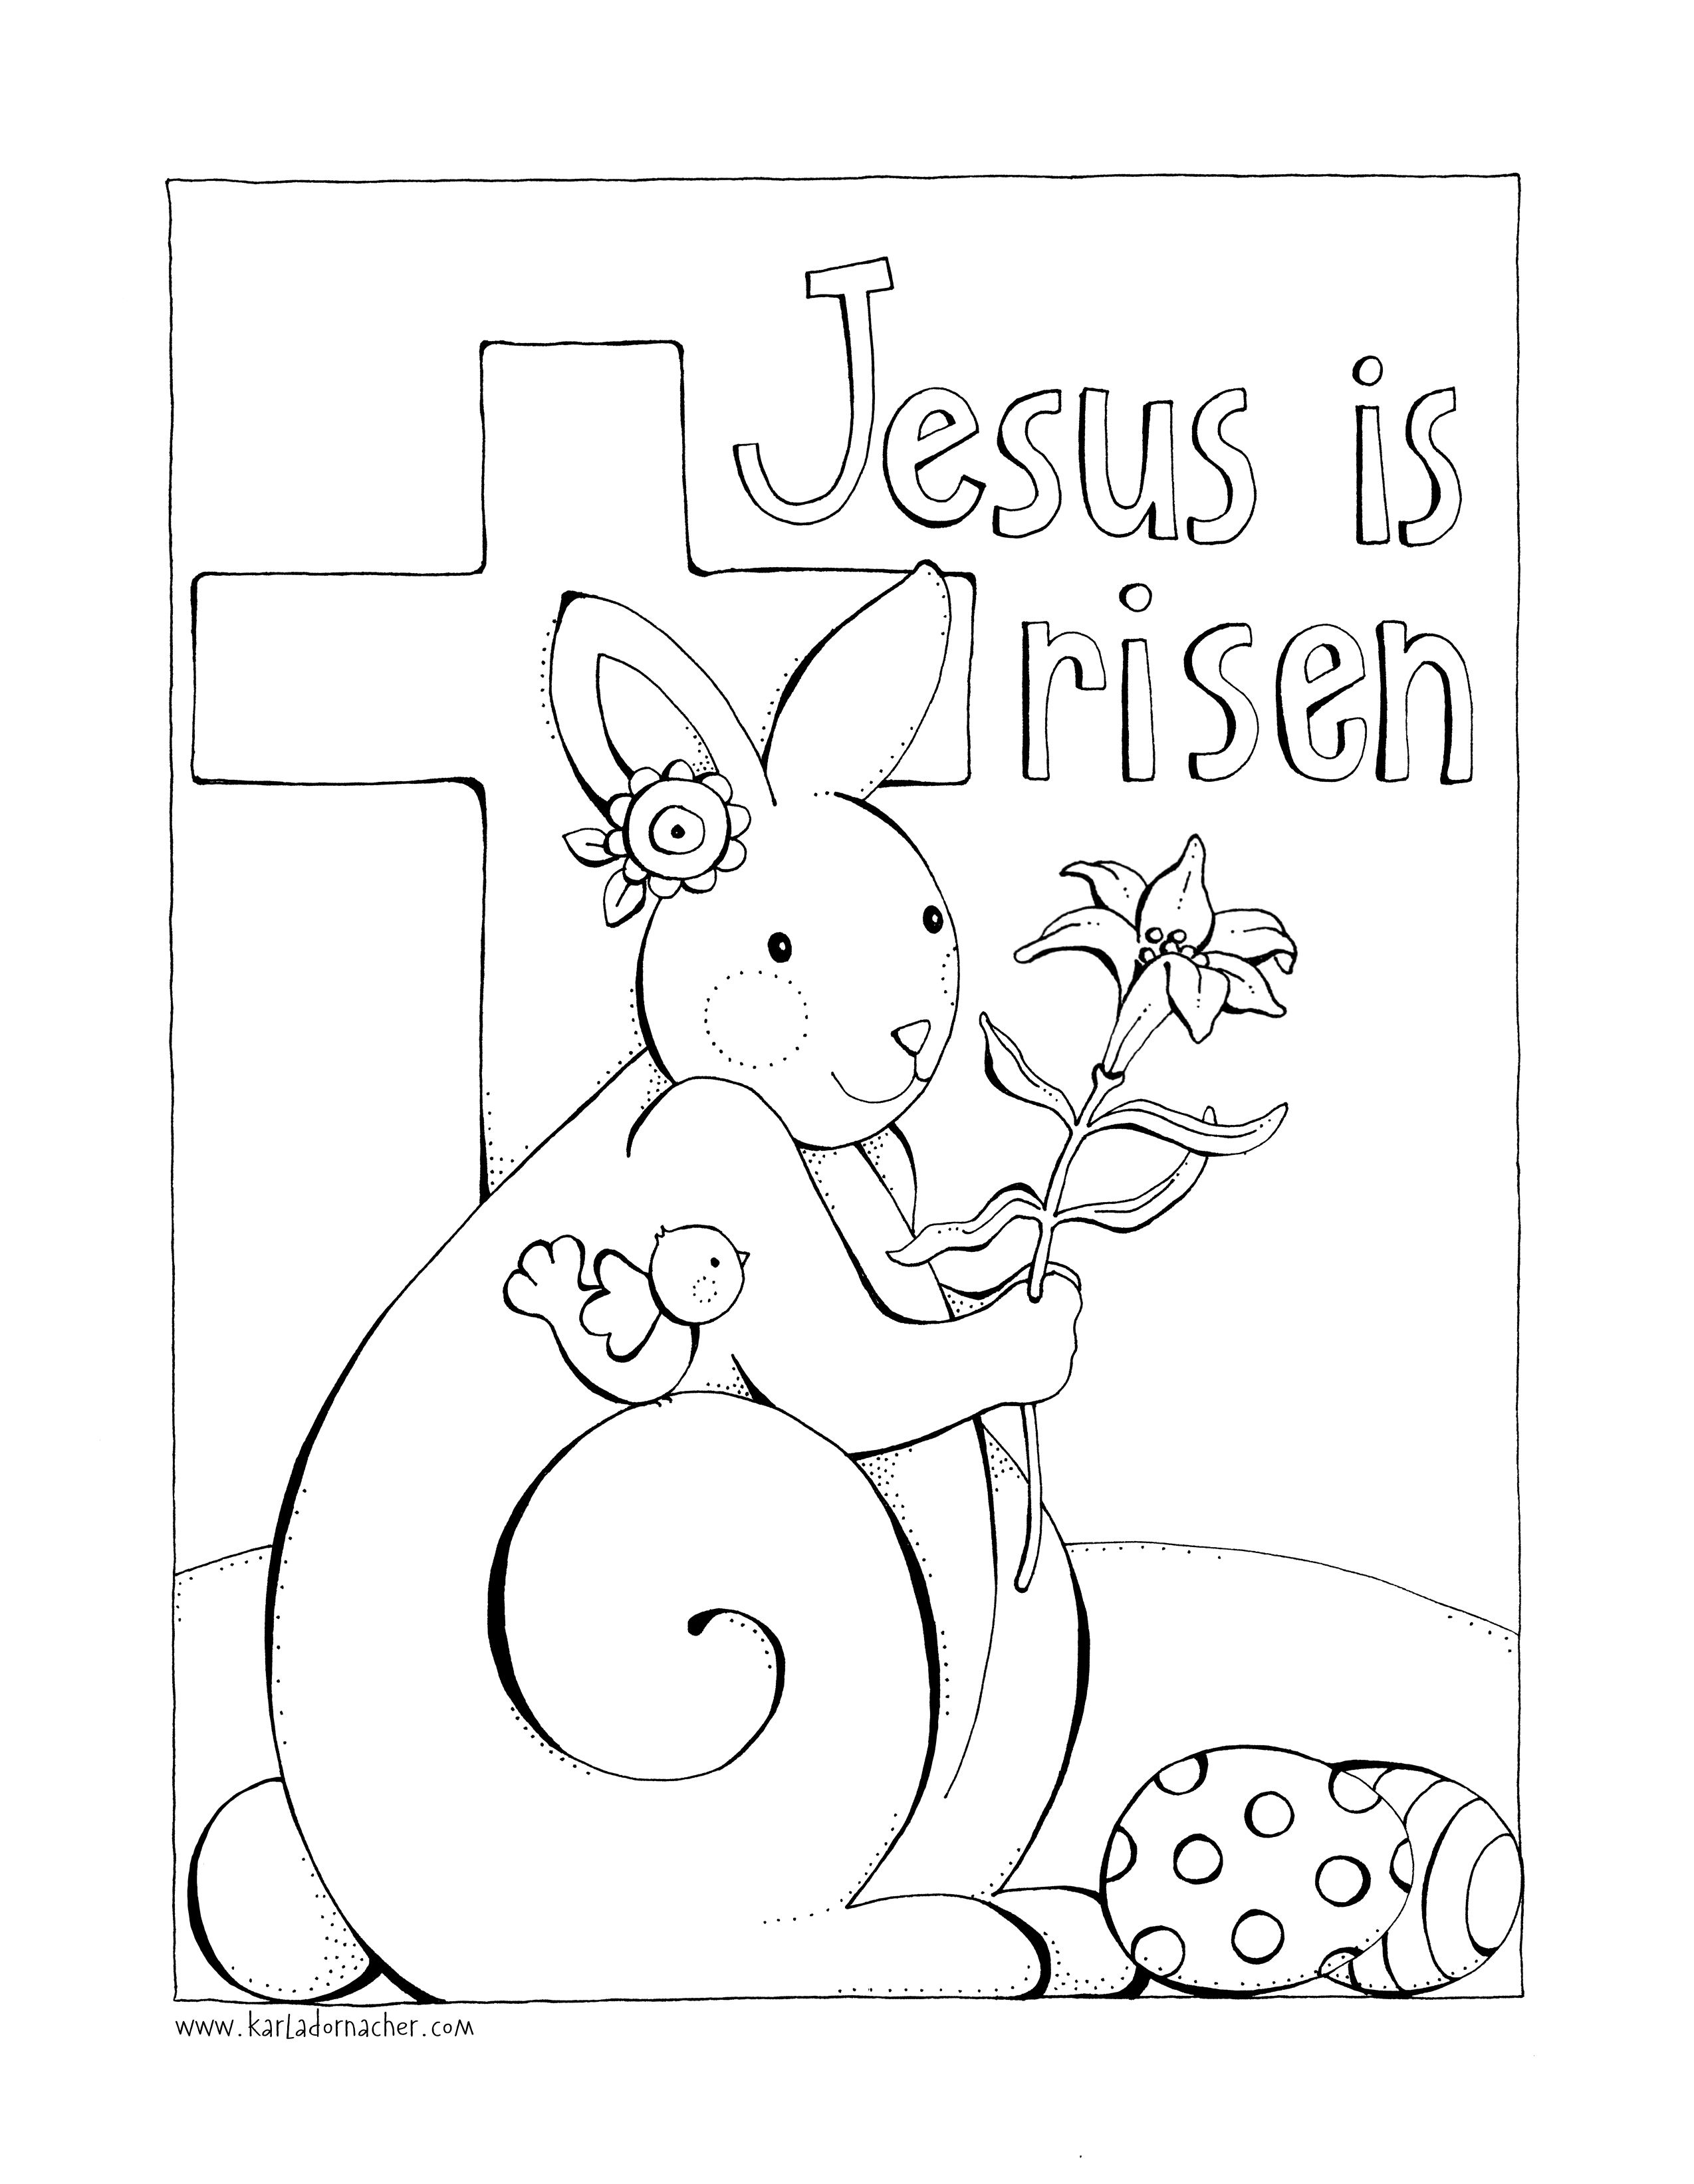 Jesus Is Risen Free Easter Coloring Page You Can Download It Here Http Bit Bunny Coloring Pages Easter Bunny Colouring Easter Coloring Pages Printable